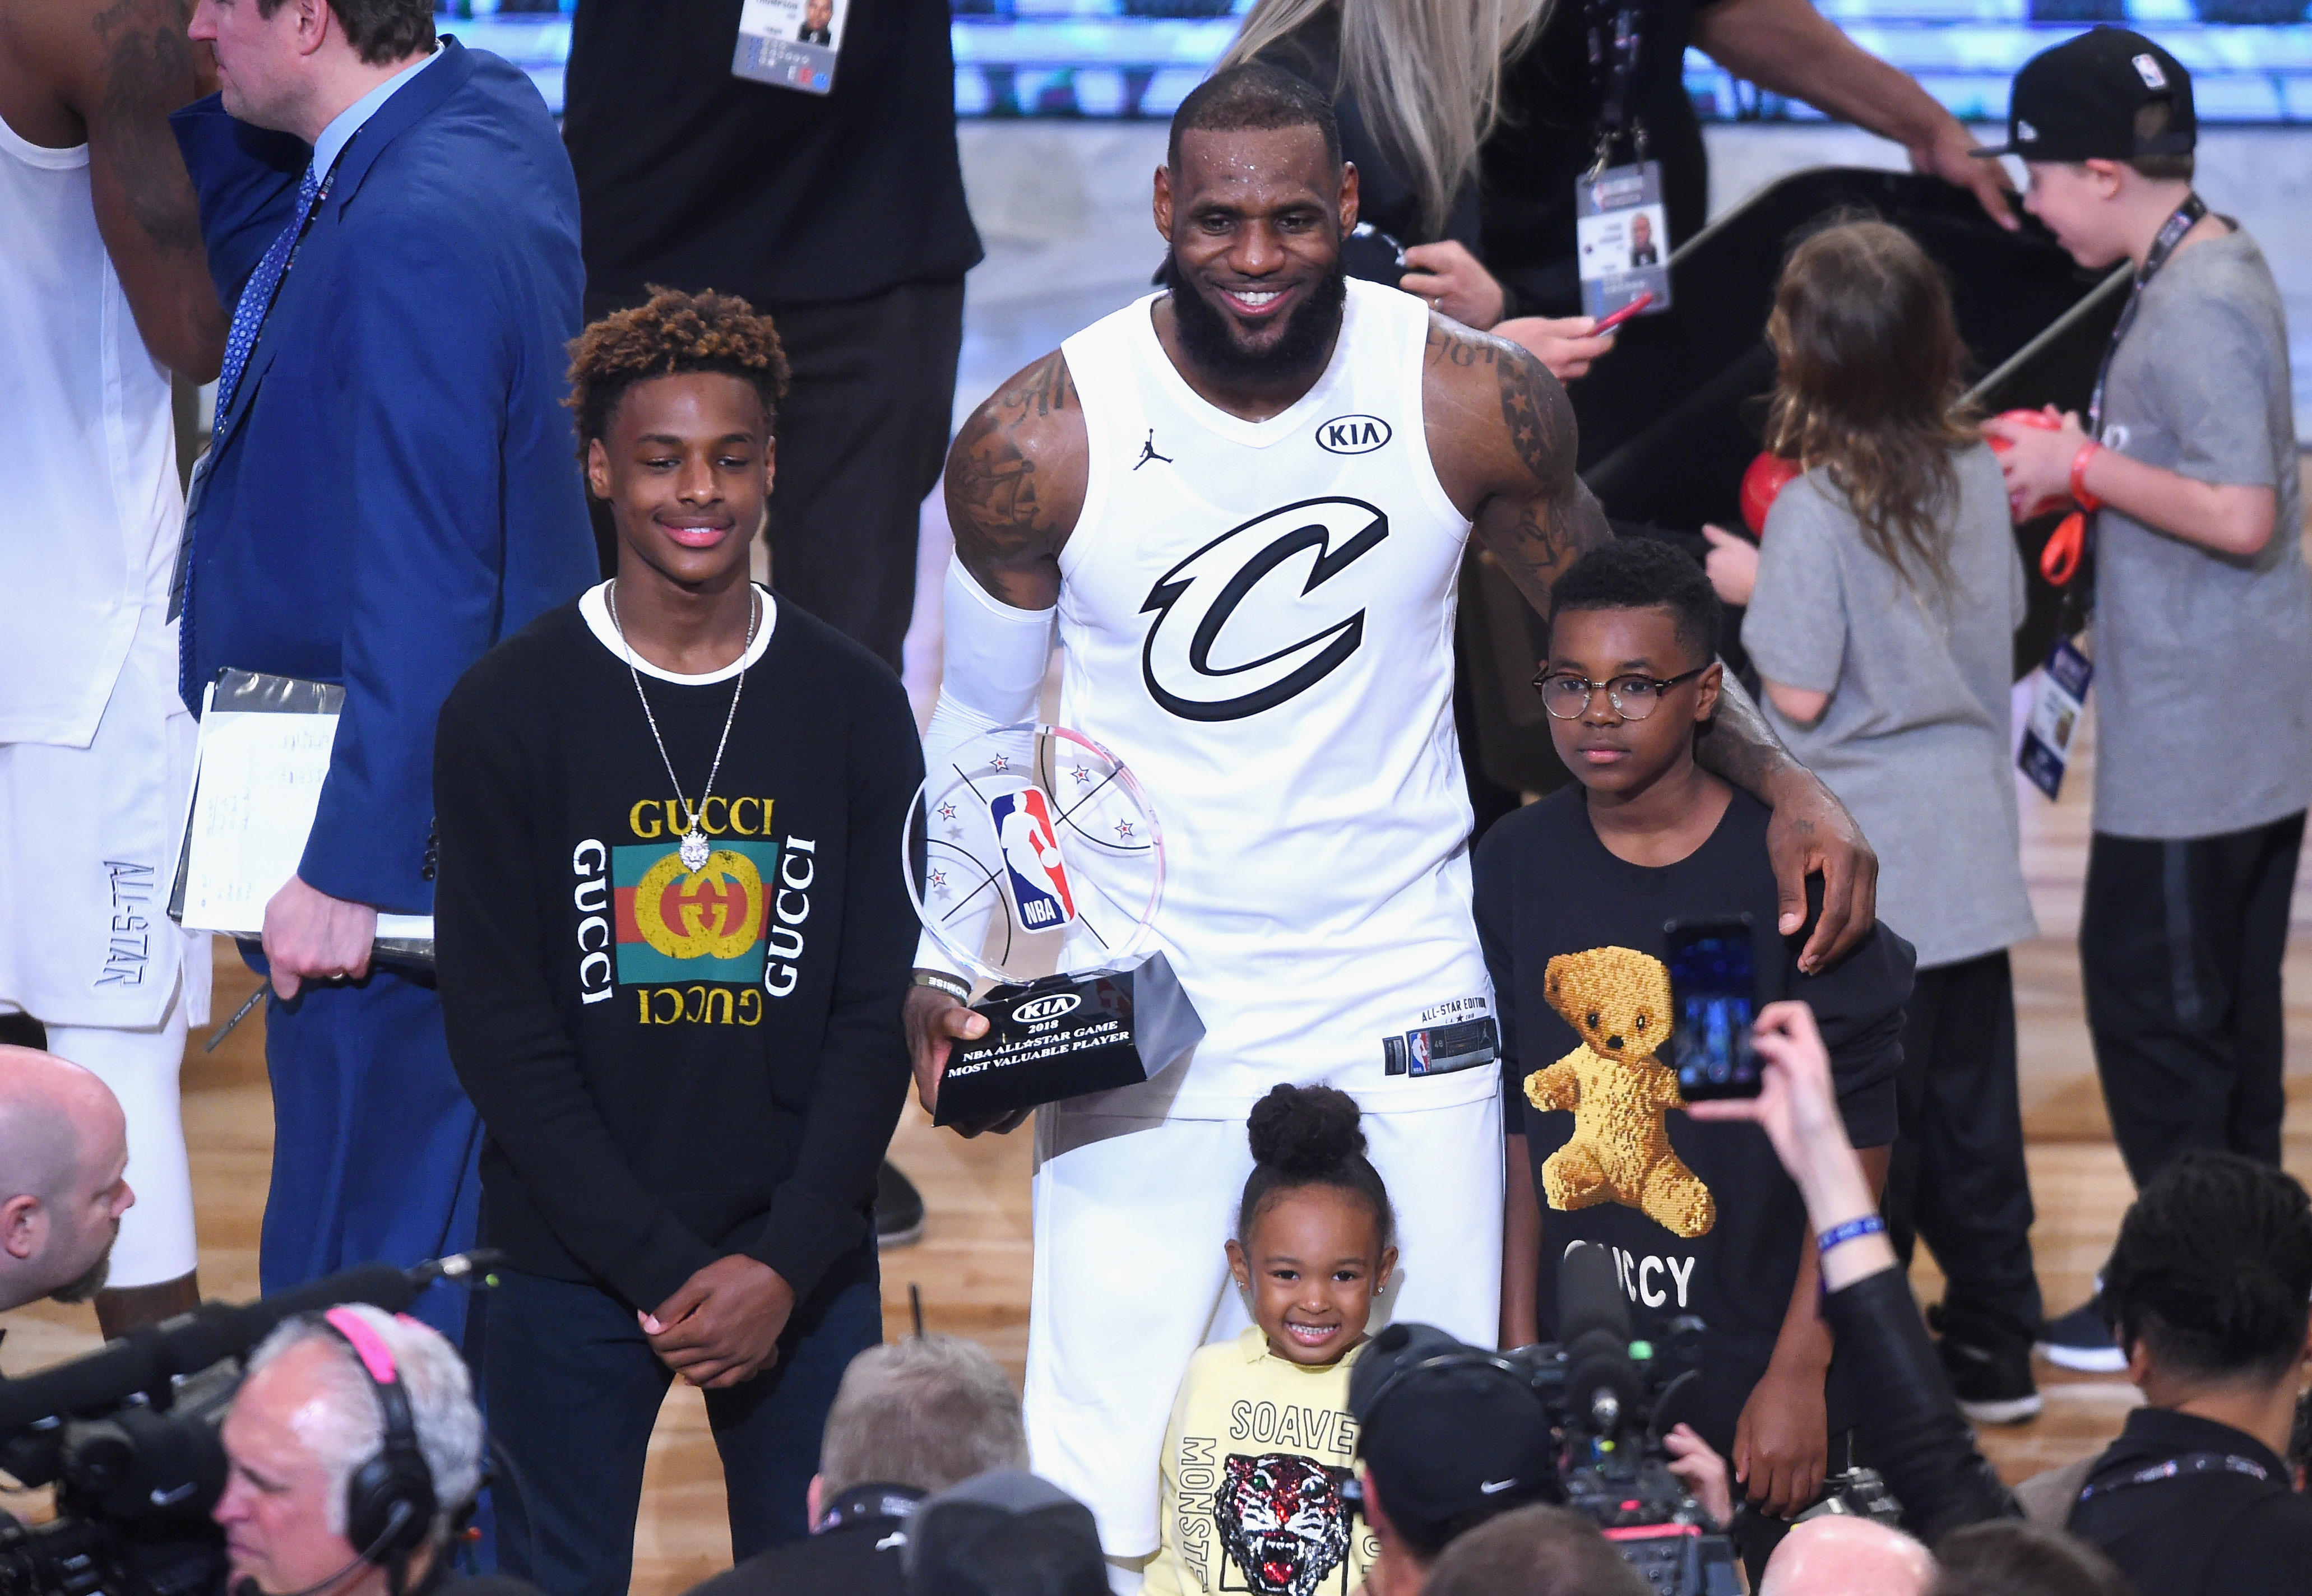 LOS ANGELES, CA - FEBRUARY 18:  (L-R) LeBron James Jr., LeBron James #23, Zhuri James and Bryce Maximus James pose for a photo with the All-Star Game MVP trophy during the NBA All-Star Game 2018 at Staples Center on February 18, 2018 in Los Angeles, California.  (Photo by Jayne Kamin-Oncea/Getty Images)